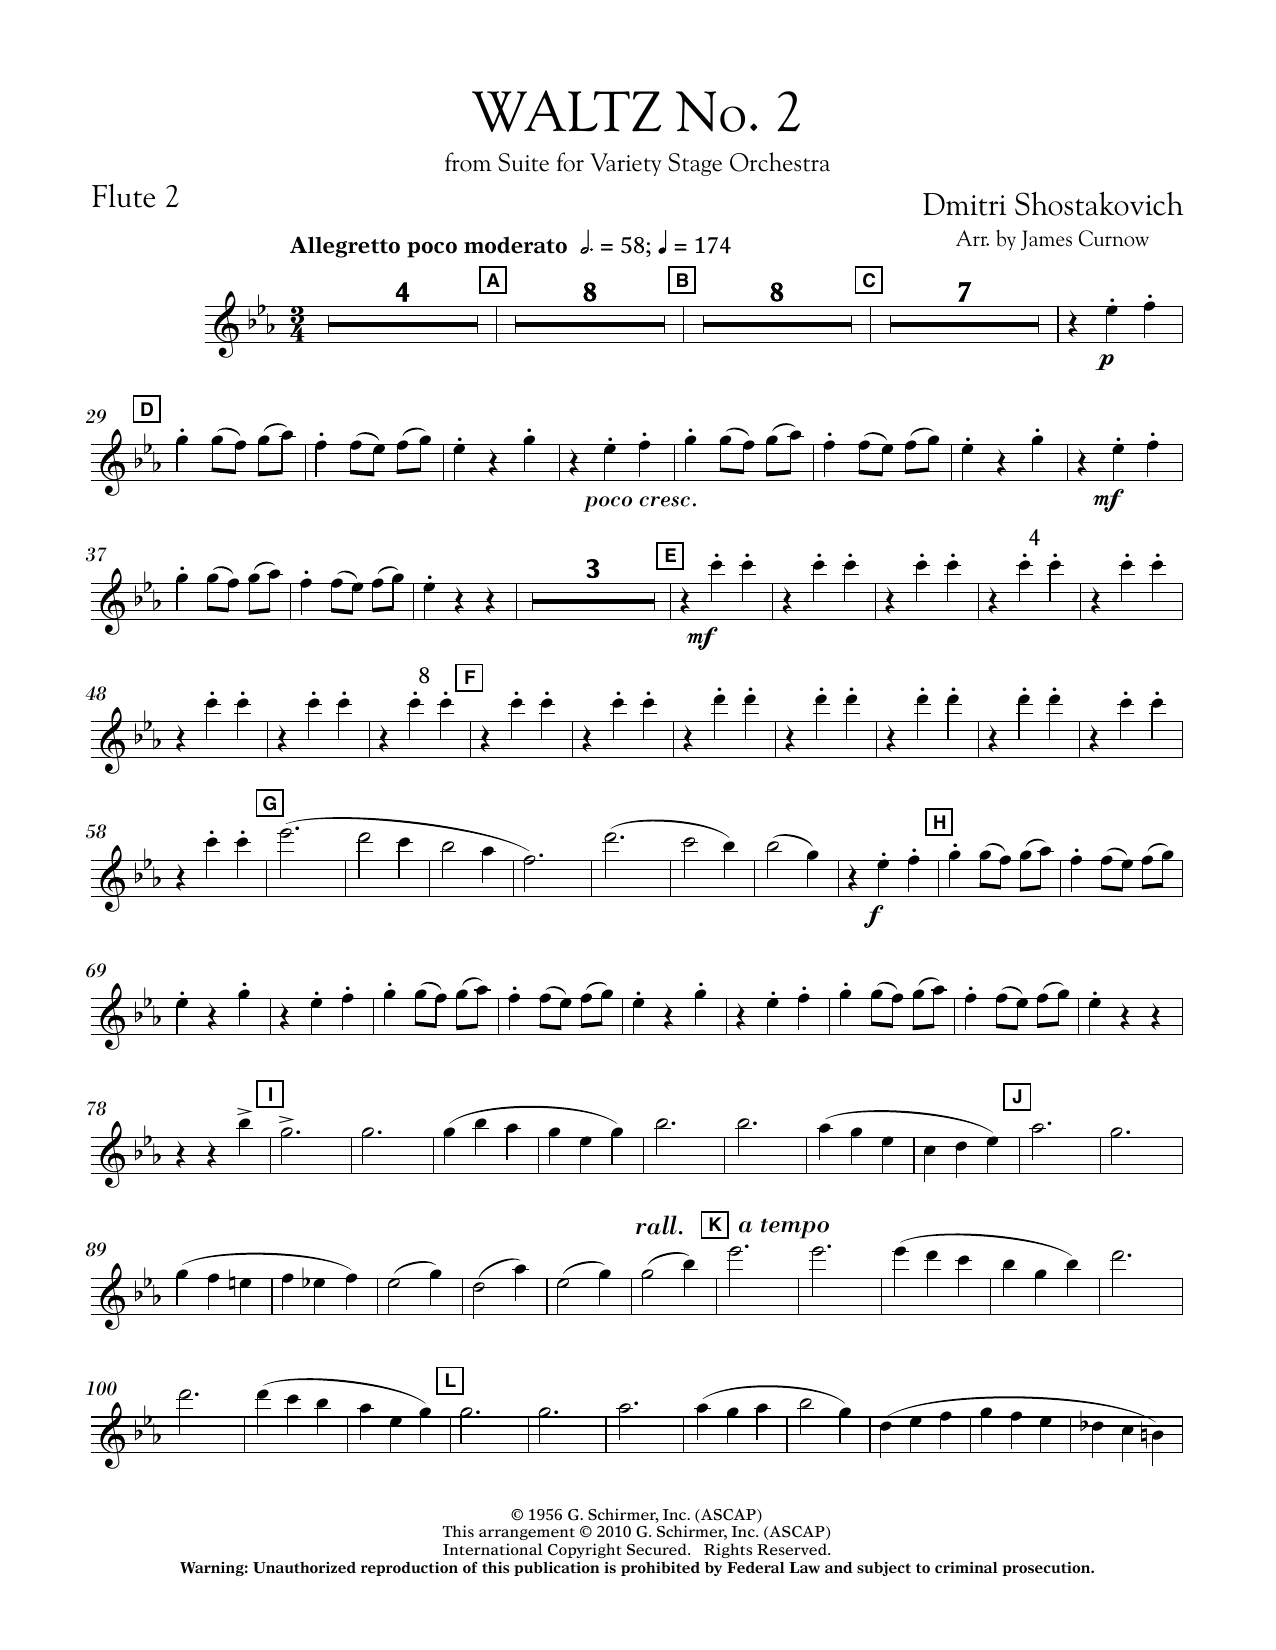 James Curnow Waltz No. 2 (from Suite For Variety Stage Orchestra) - Flute 2 sheet music notes and chords. Download Printable PDF.